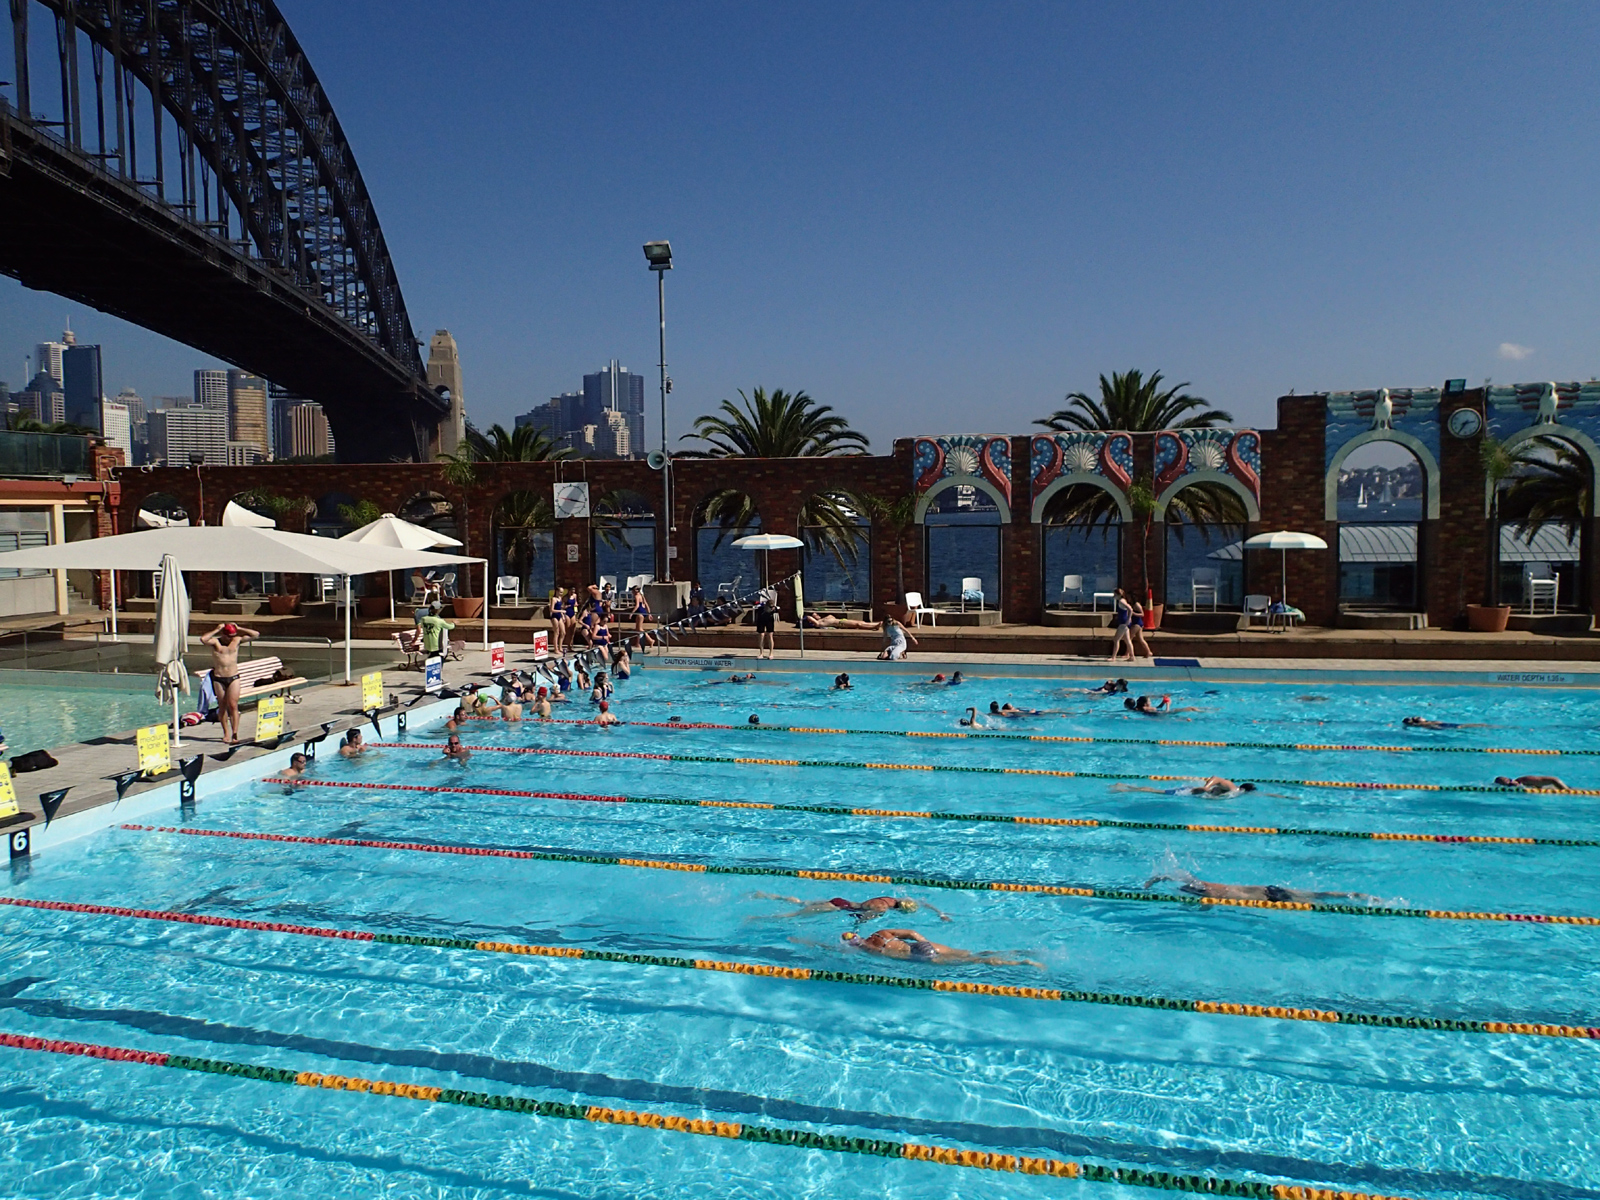 outdoor swimming pool on a sunny day, decorative wall, and Sydney Harbour bridge in background